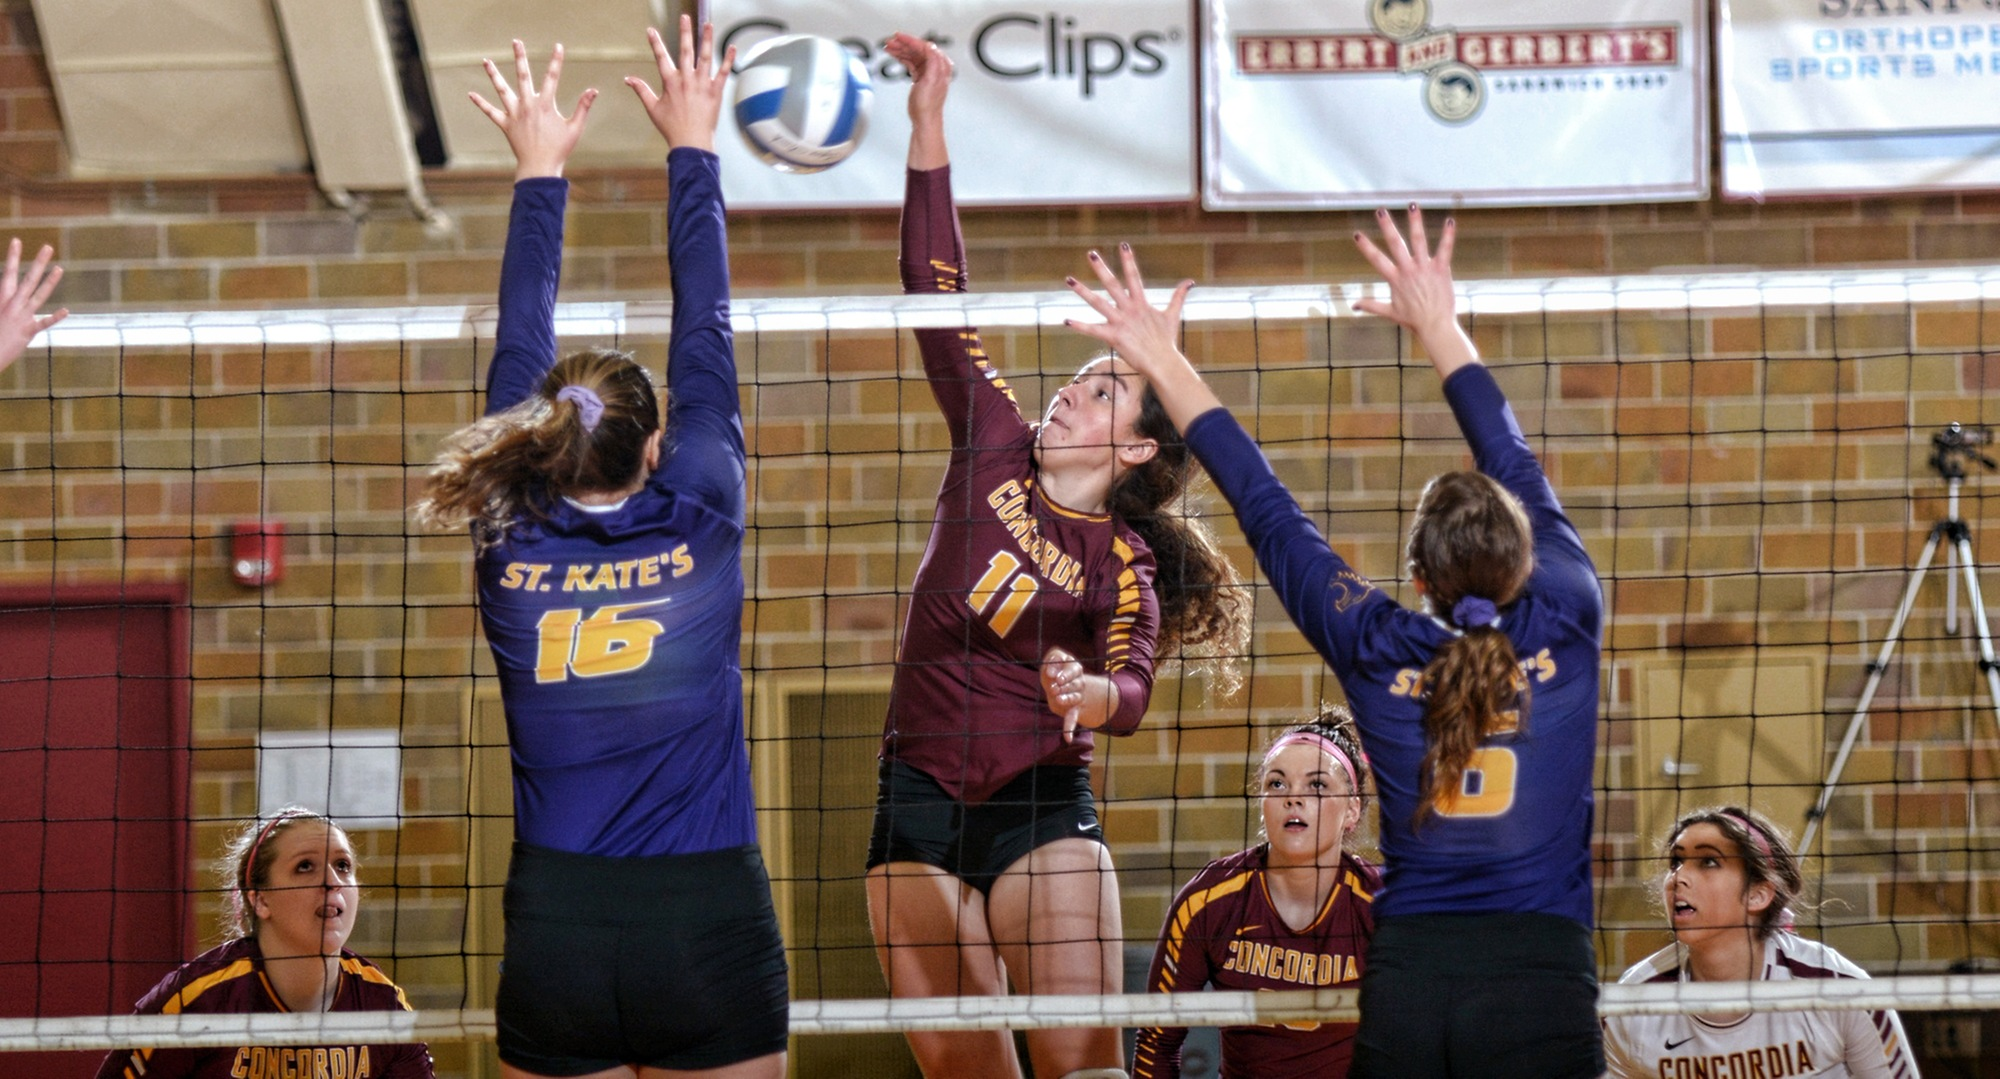 Emma Chandler puts down a winner in the Cobbers' 3-0 win over St. Catherine.